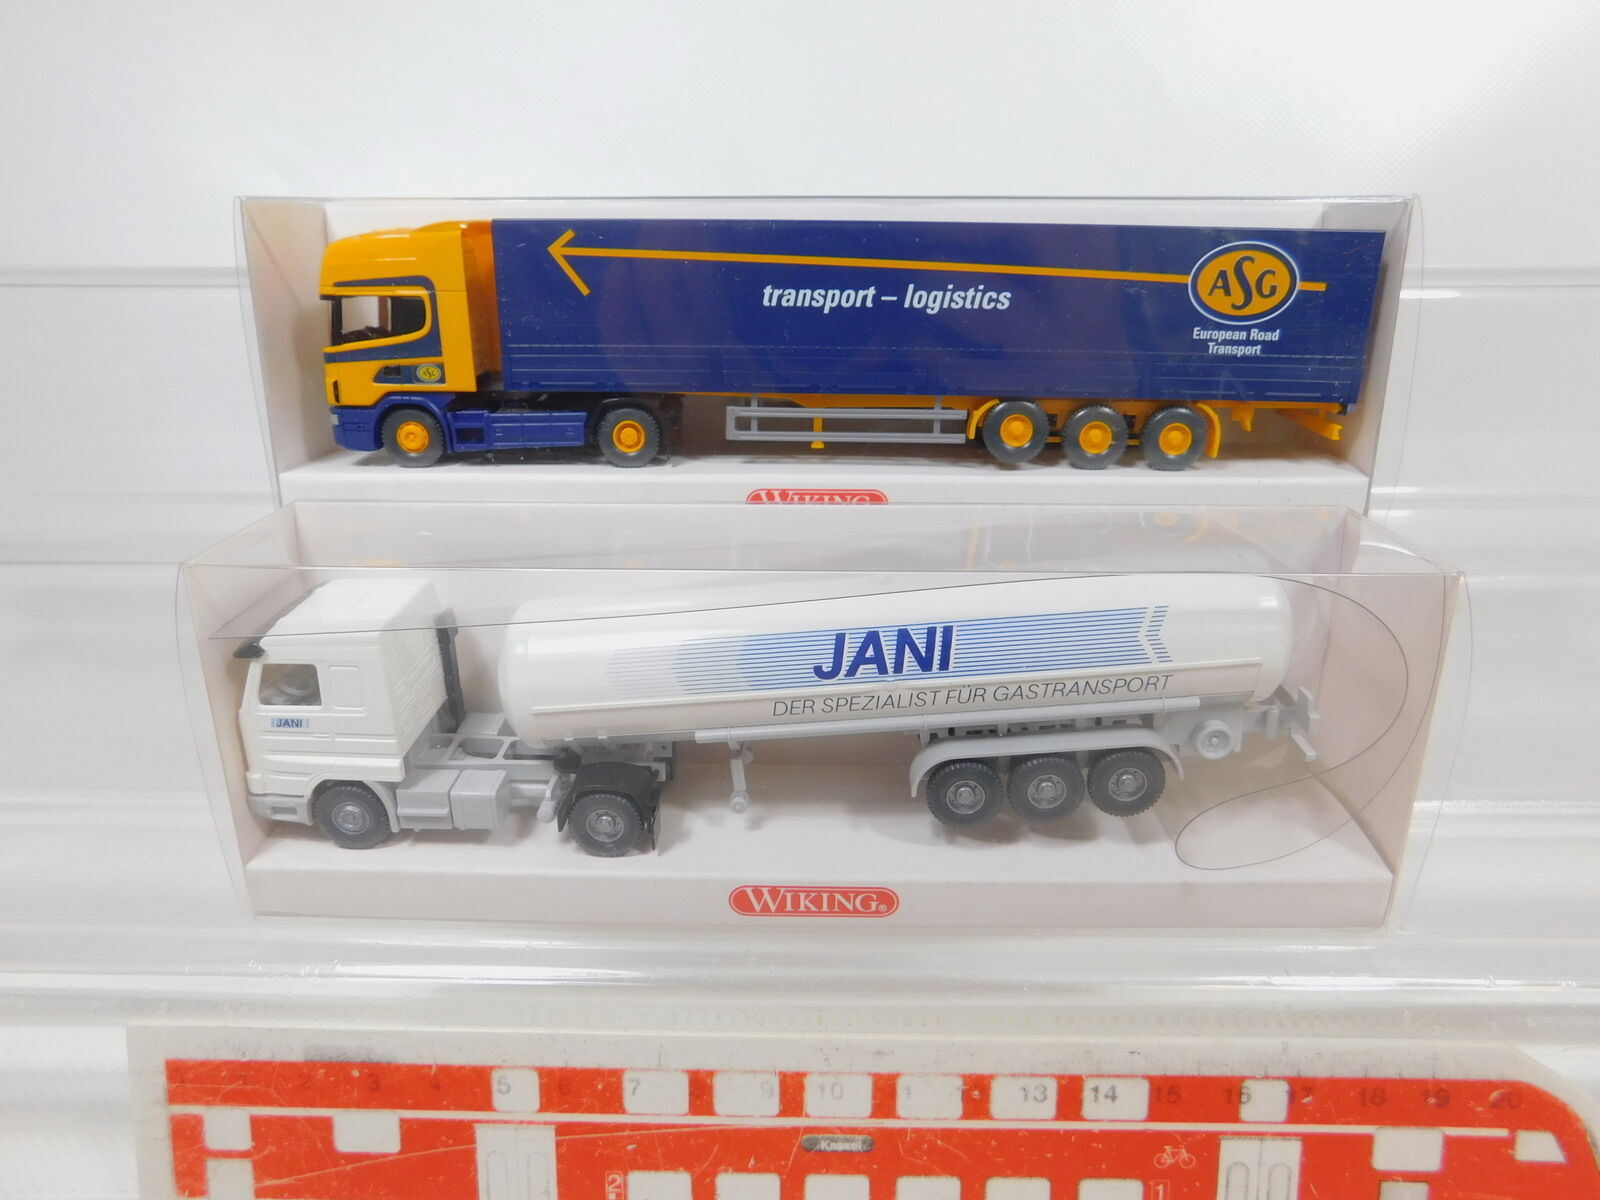 CA243-0,5 x Wiking 1 87 H0 Camion Scania  786 01 32 Jani + 510 05 39 Asg ,S.G